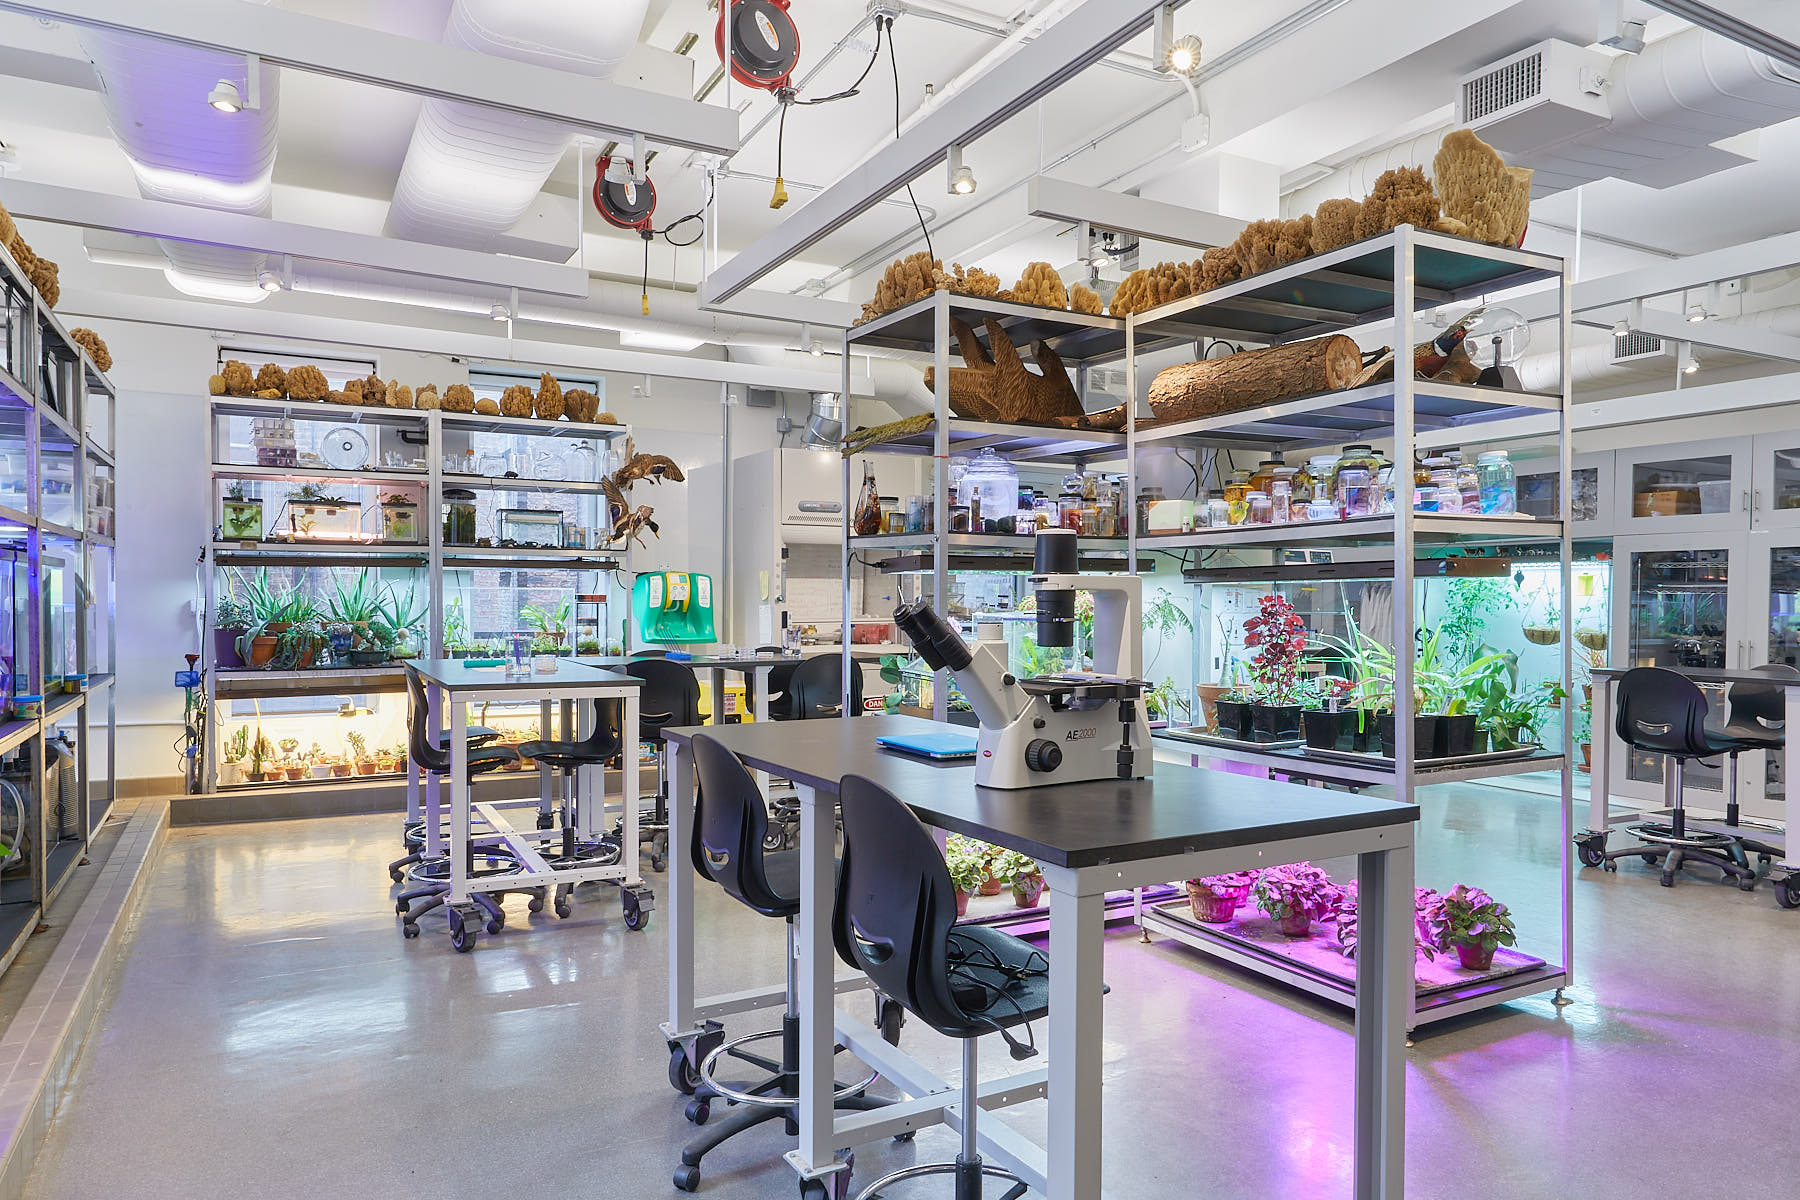 Empty laboratory space lined with tall shelves of aquariums, plants and specimens